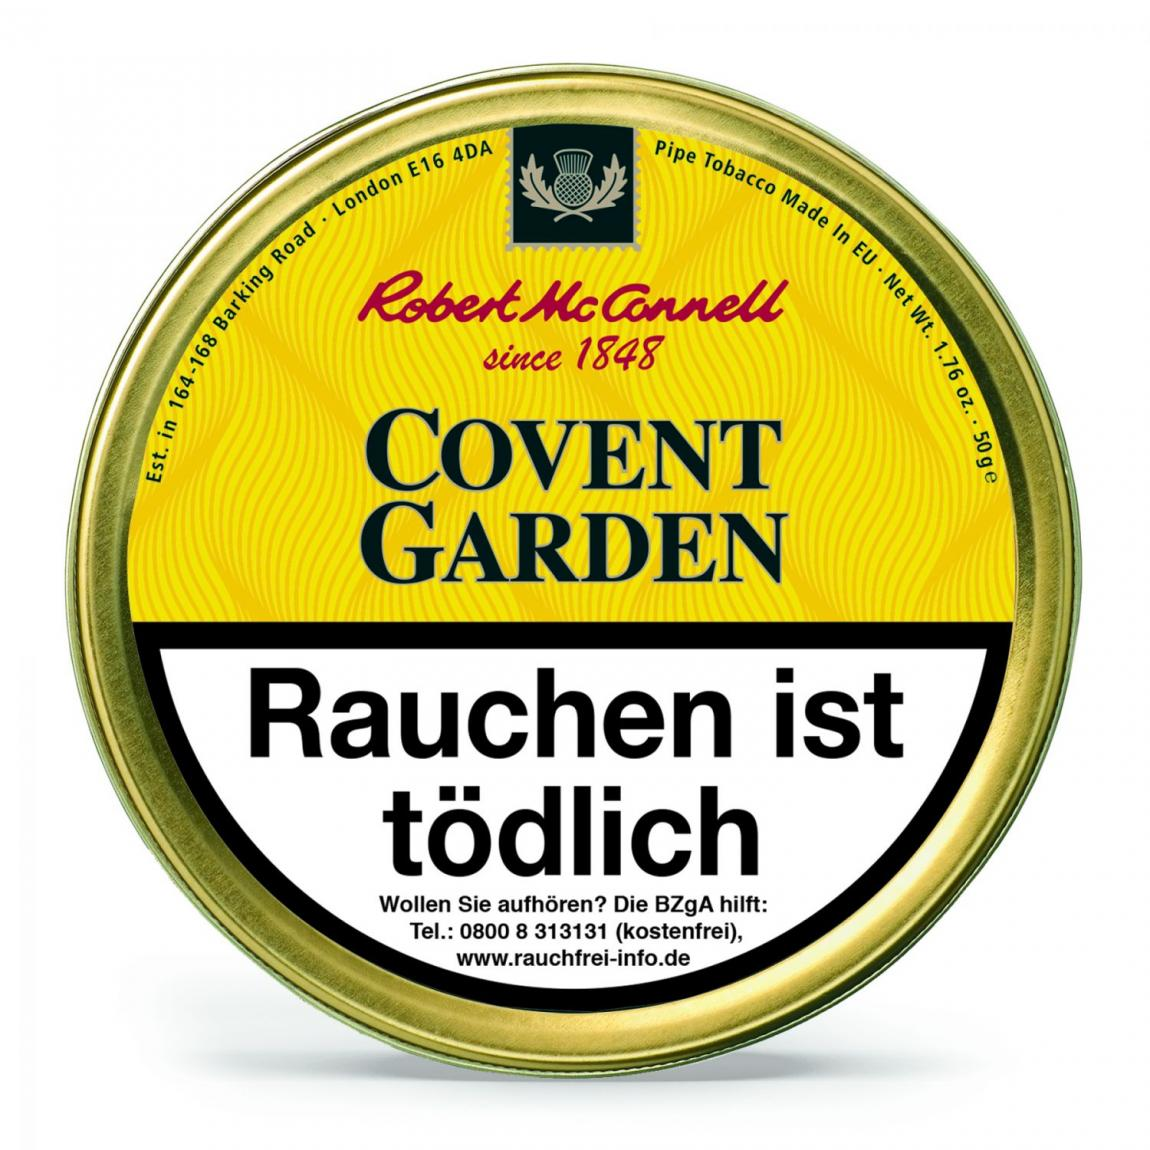 Robert McConnell Heritage »Covent Garden«